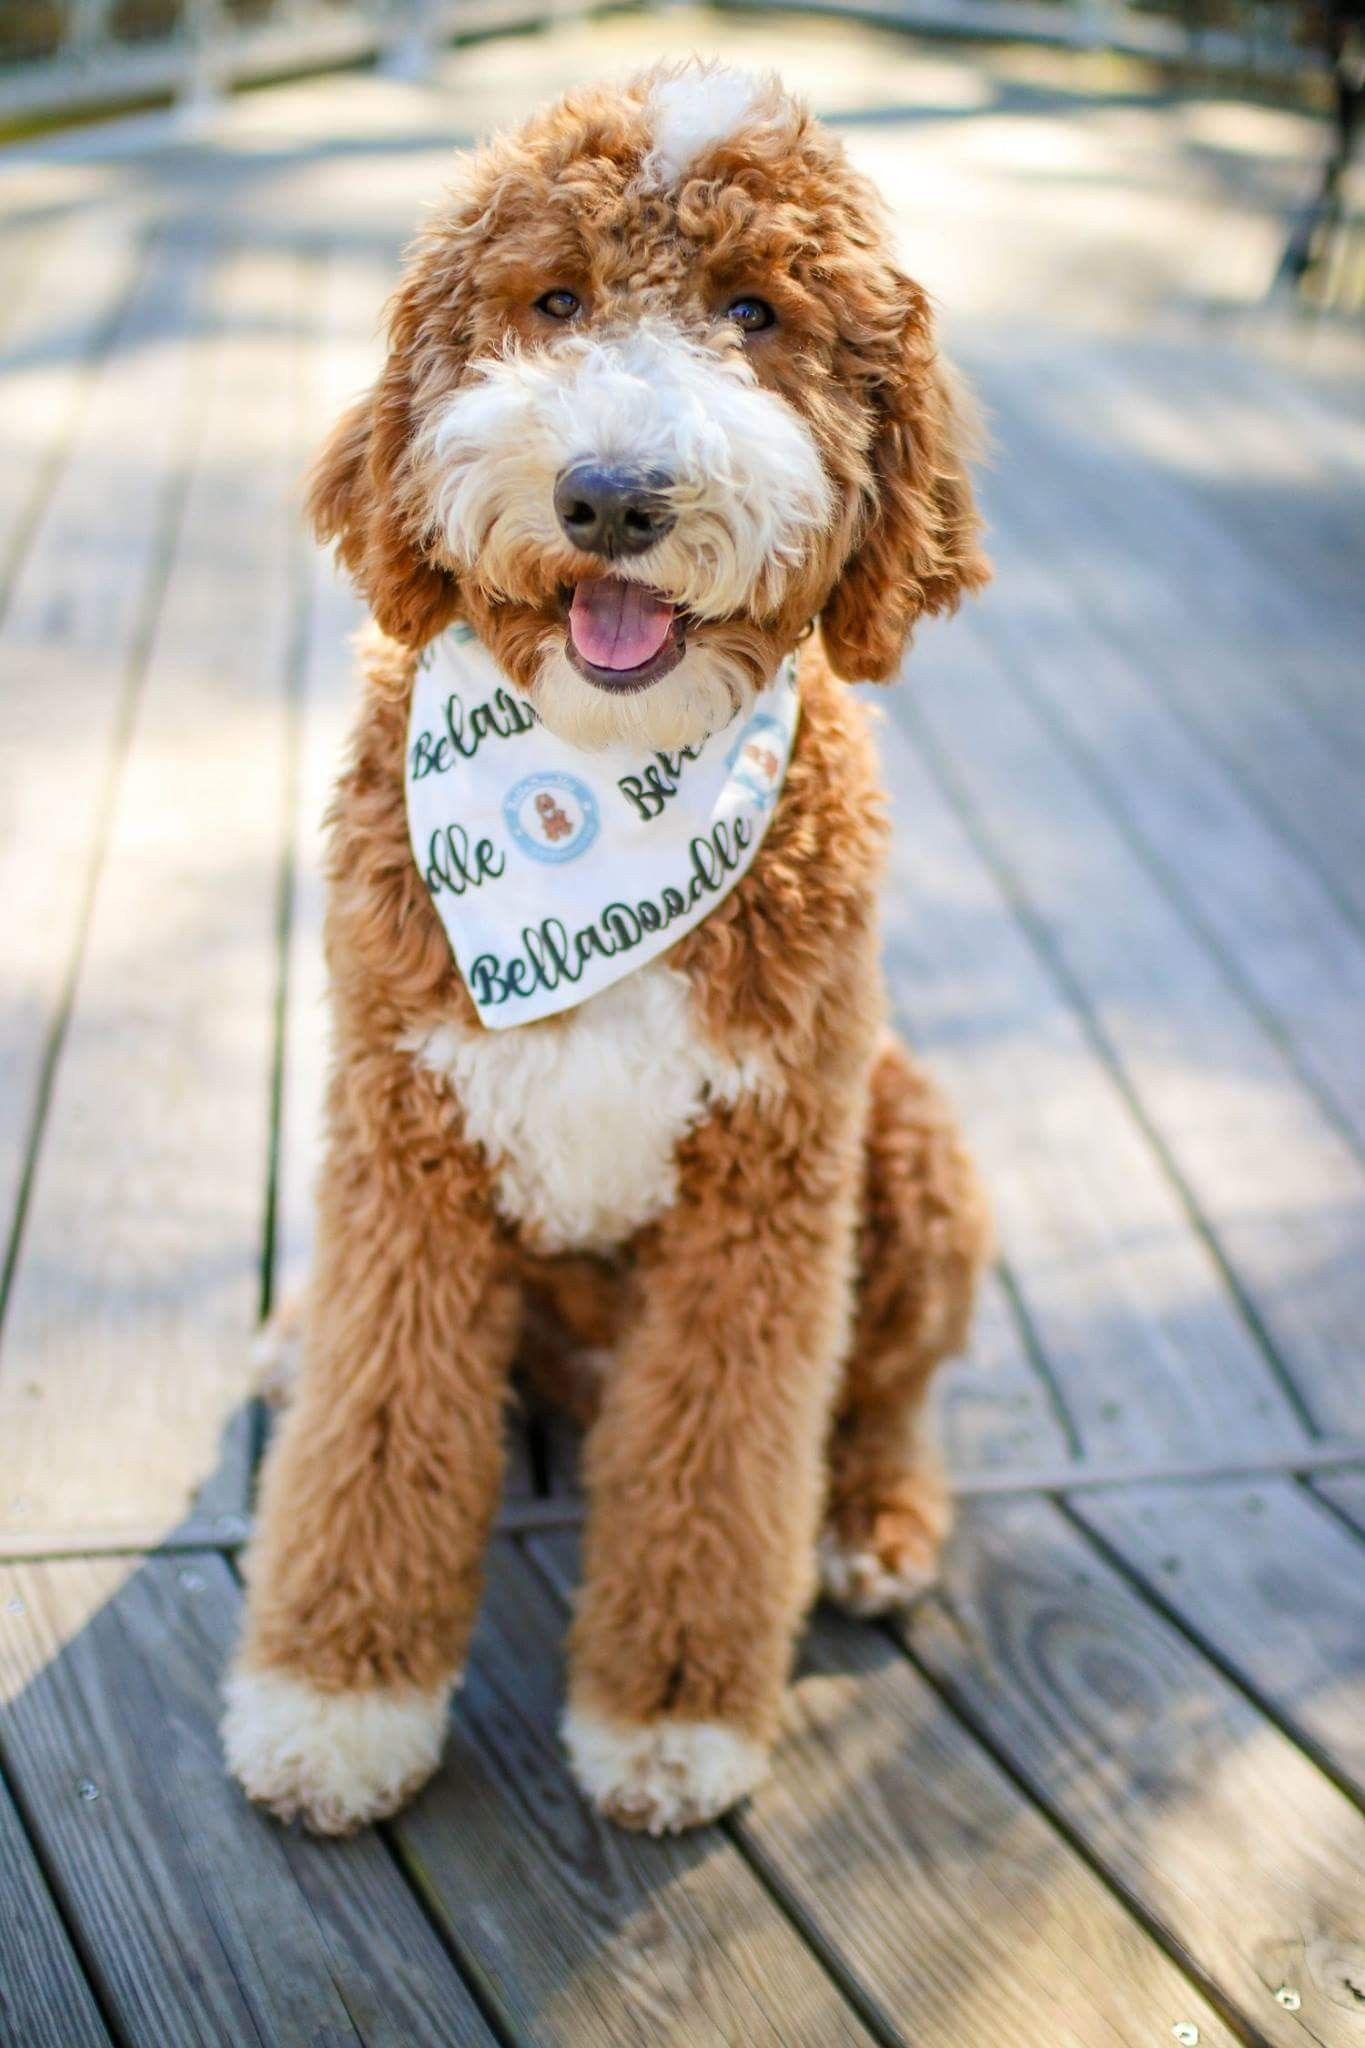 Cedar Goldendoodles Belladoodles Mini Goldendoodle Puppies